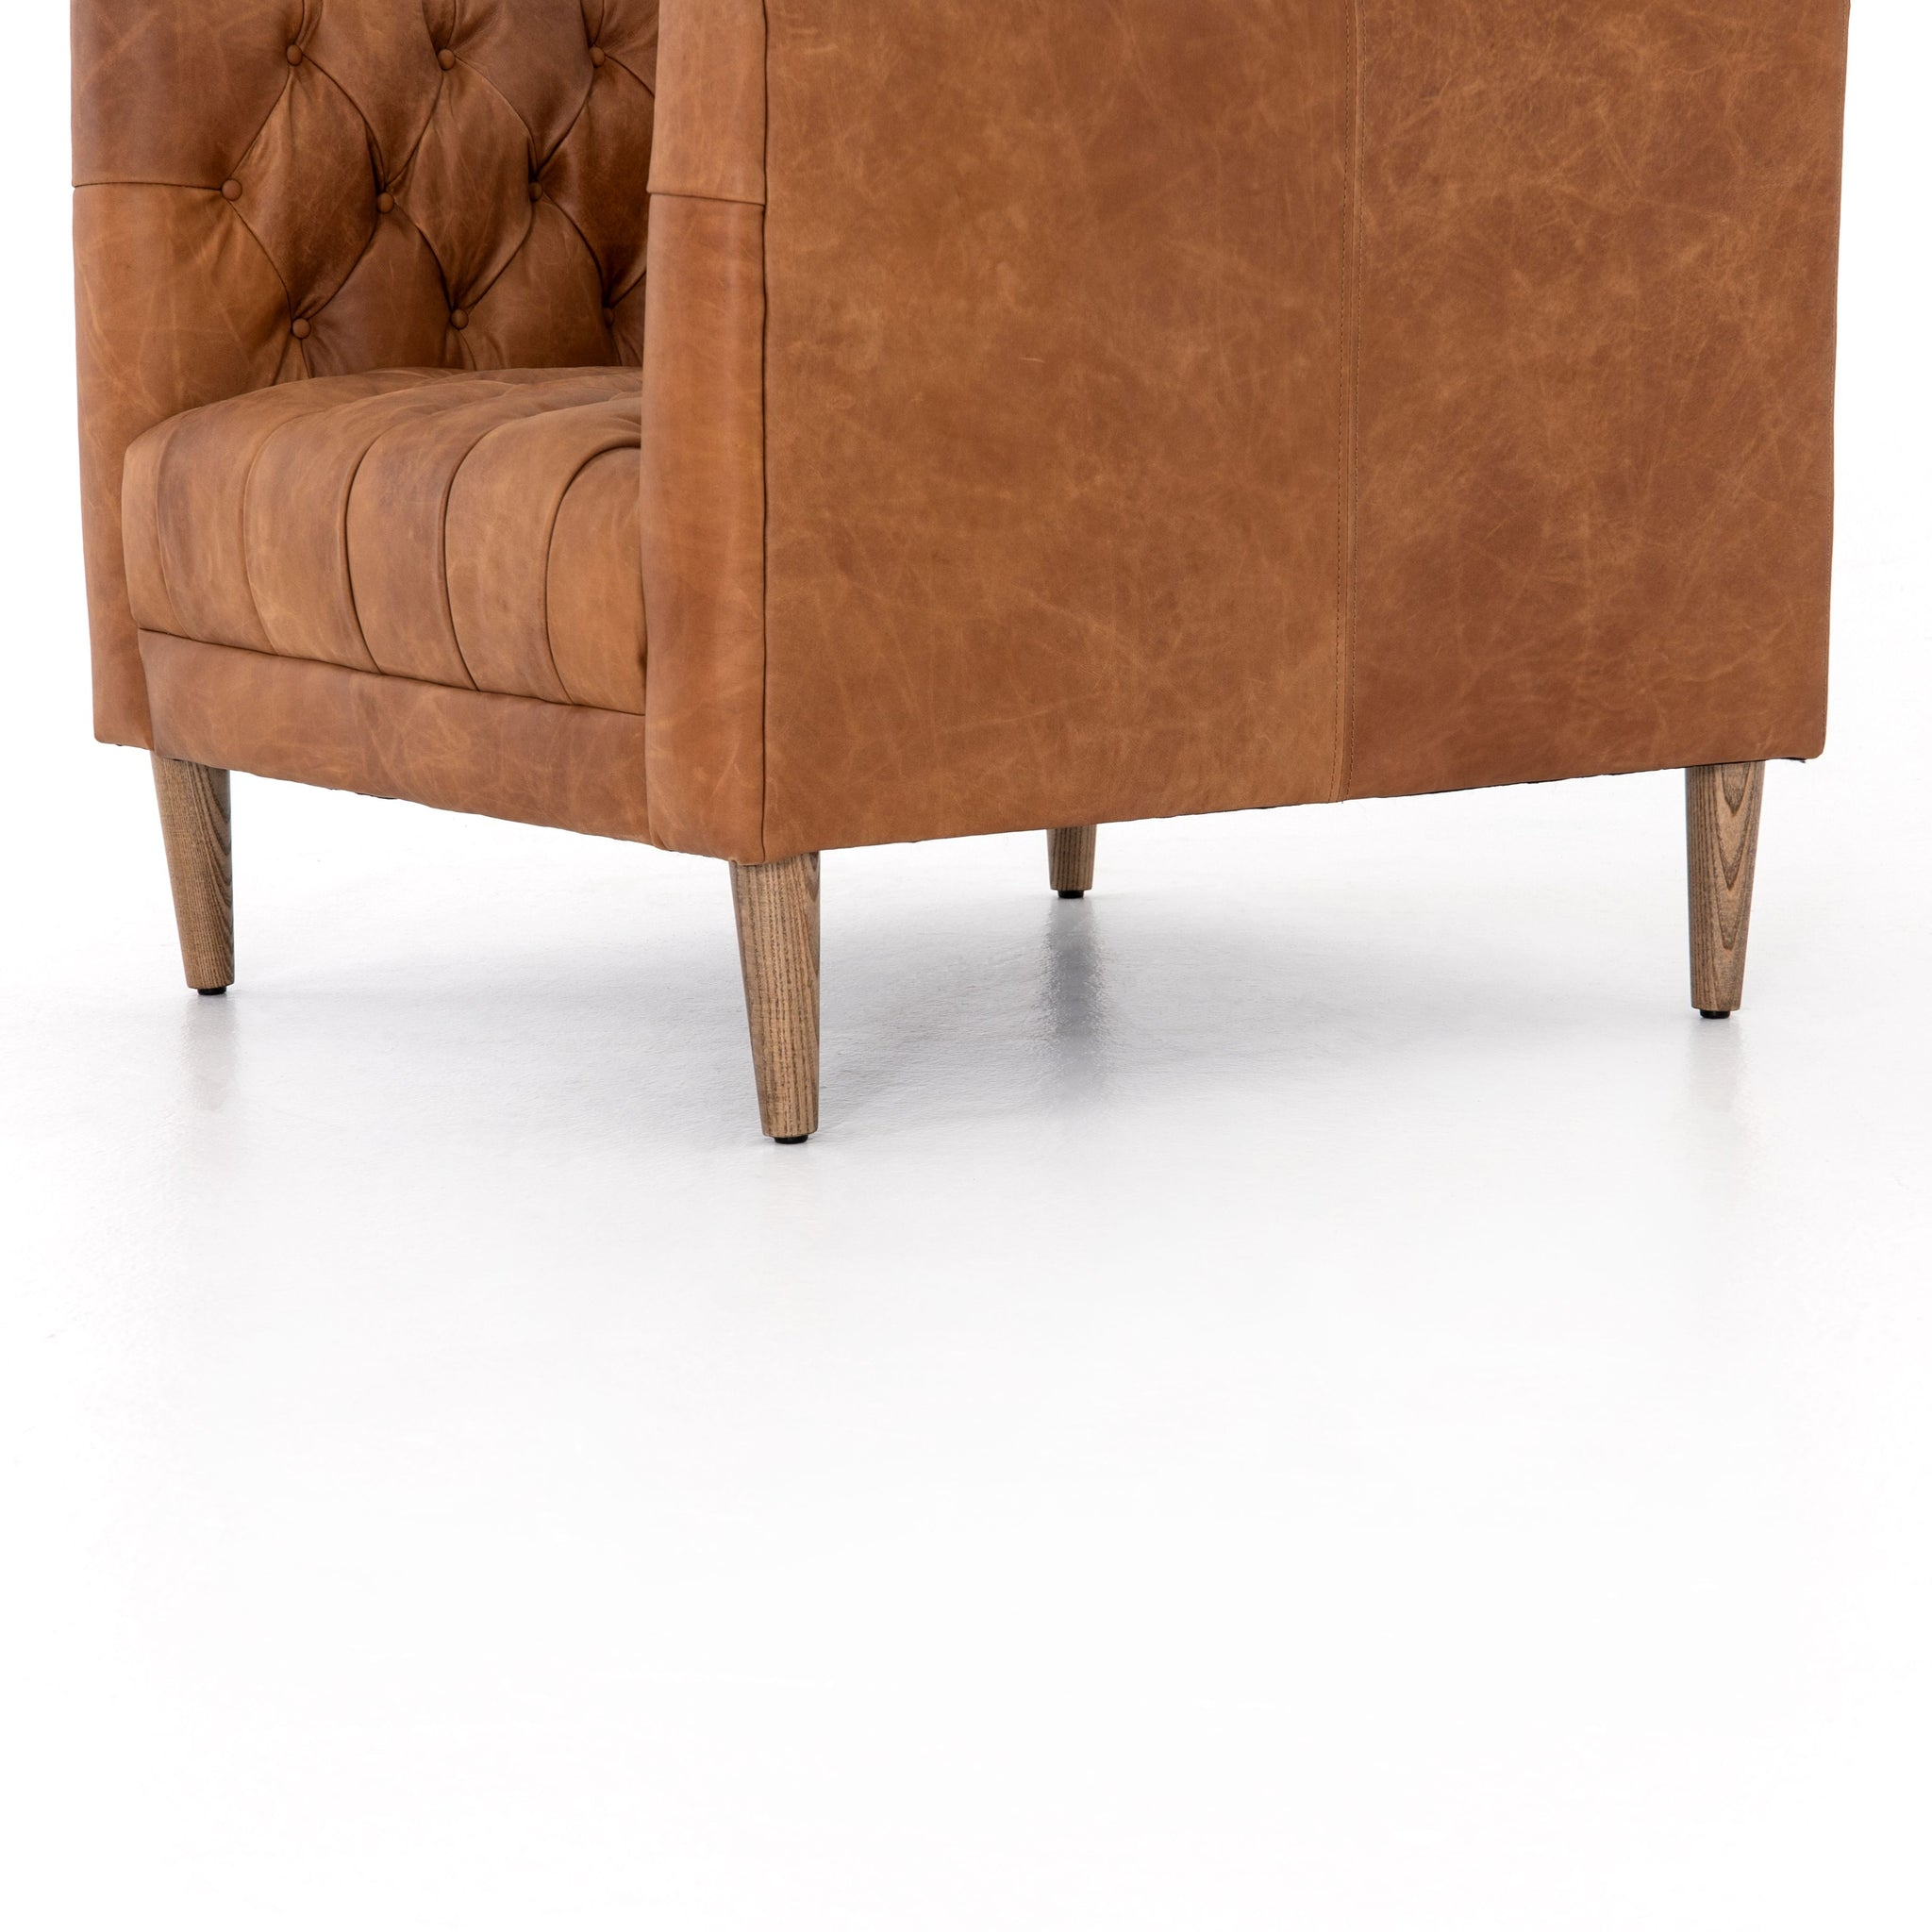 Williams Leather Chair In Natural Washed Camel, By BD Studio